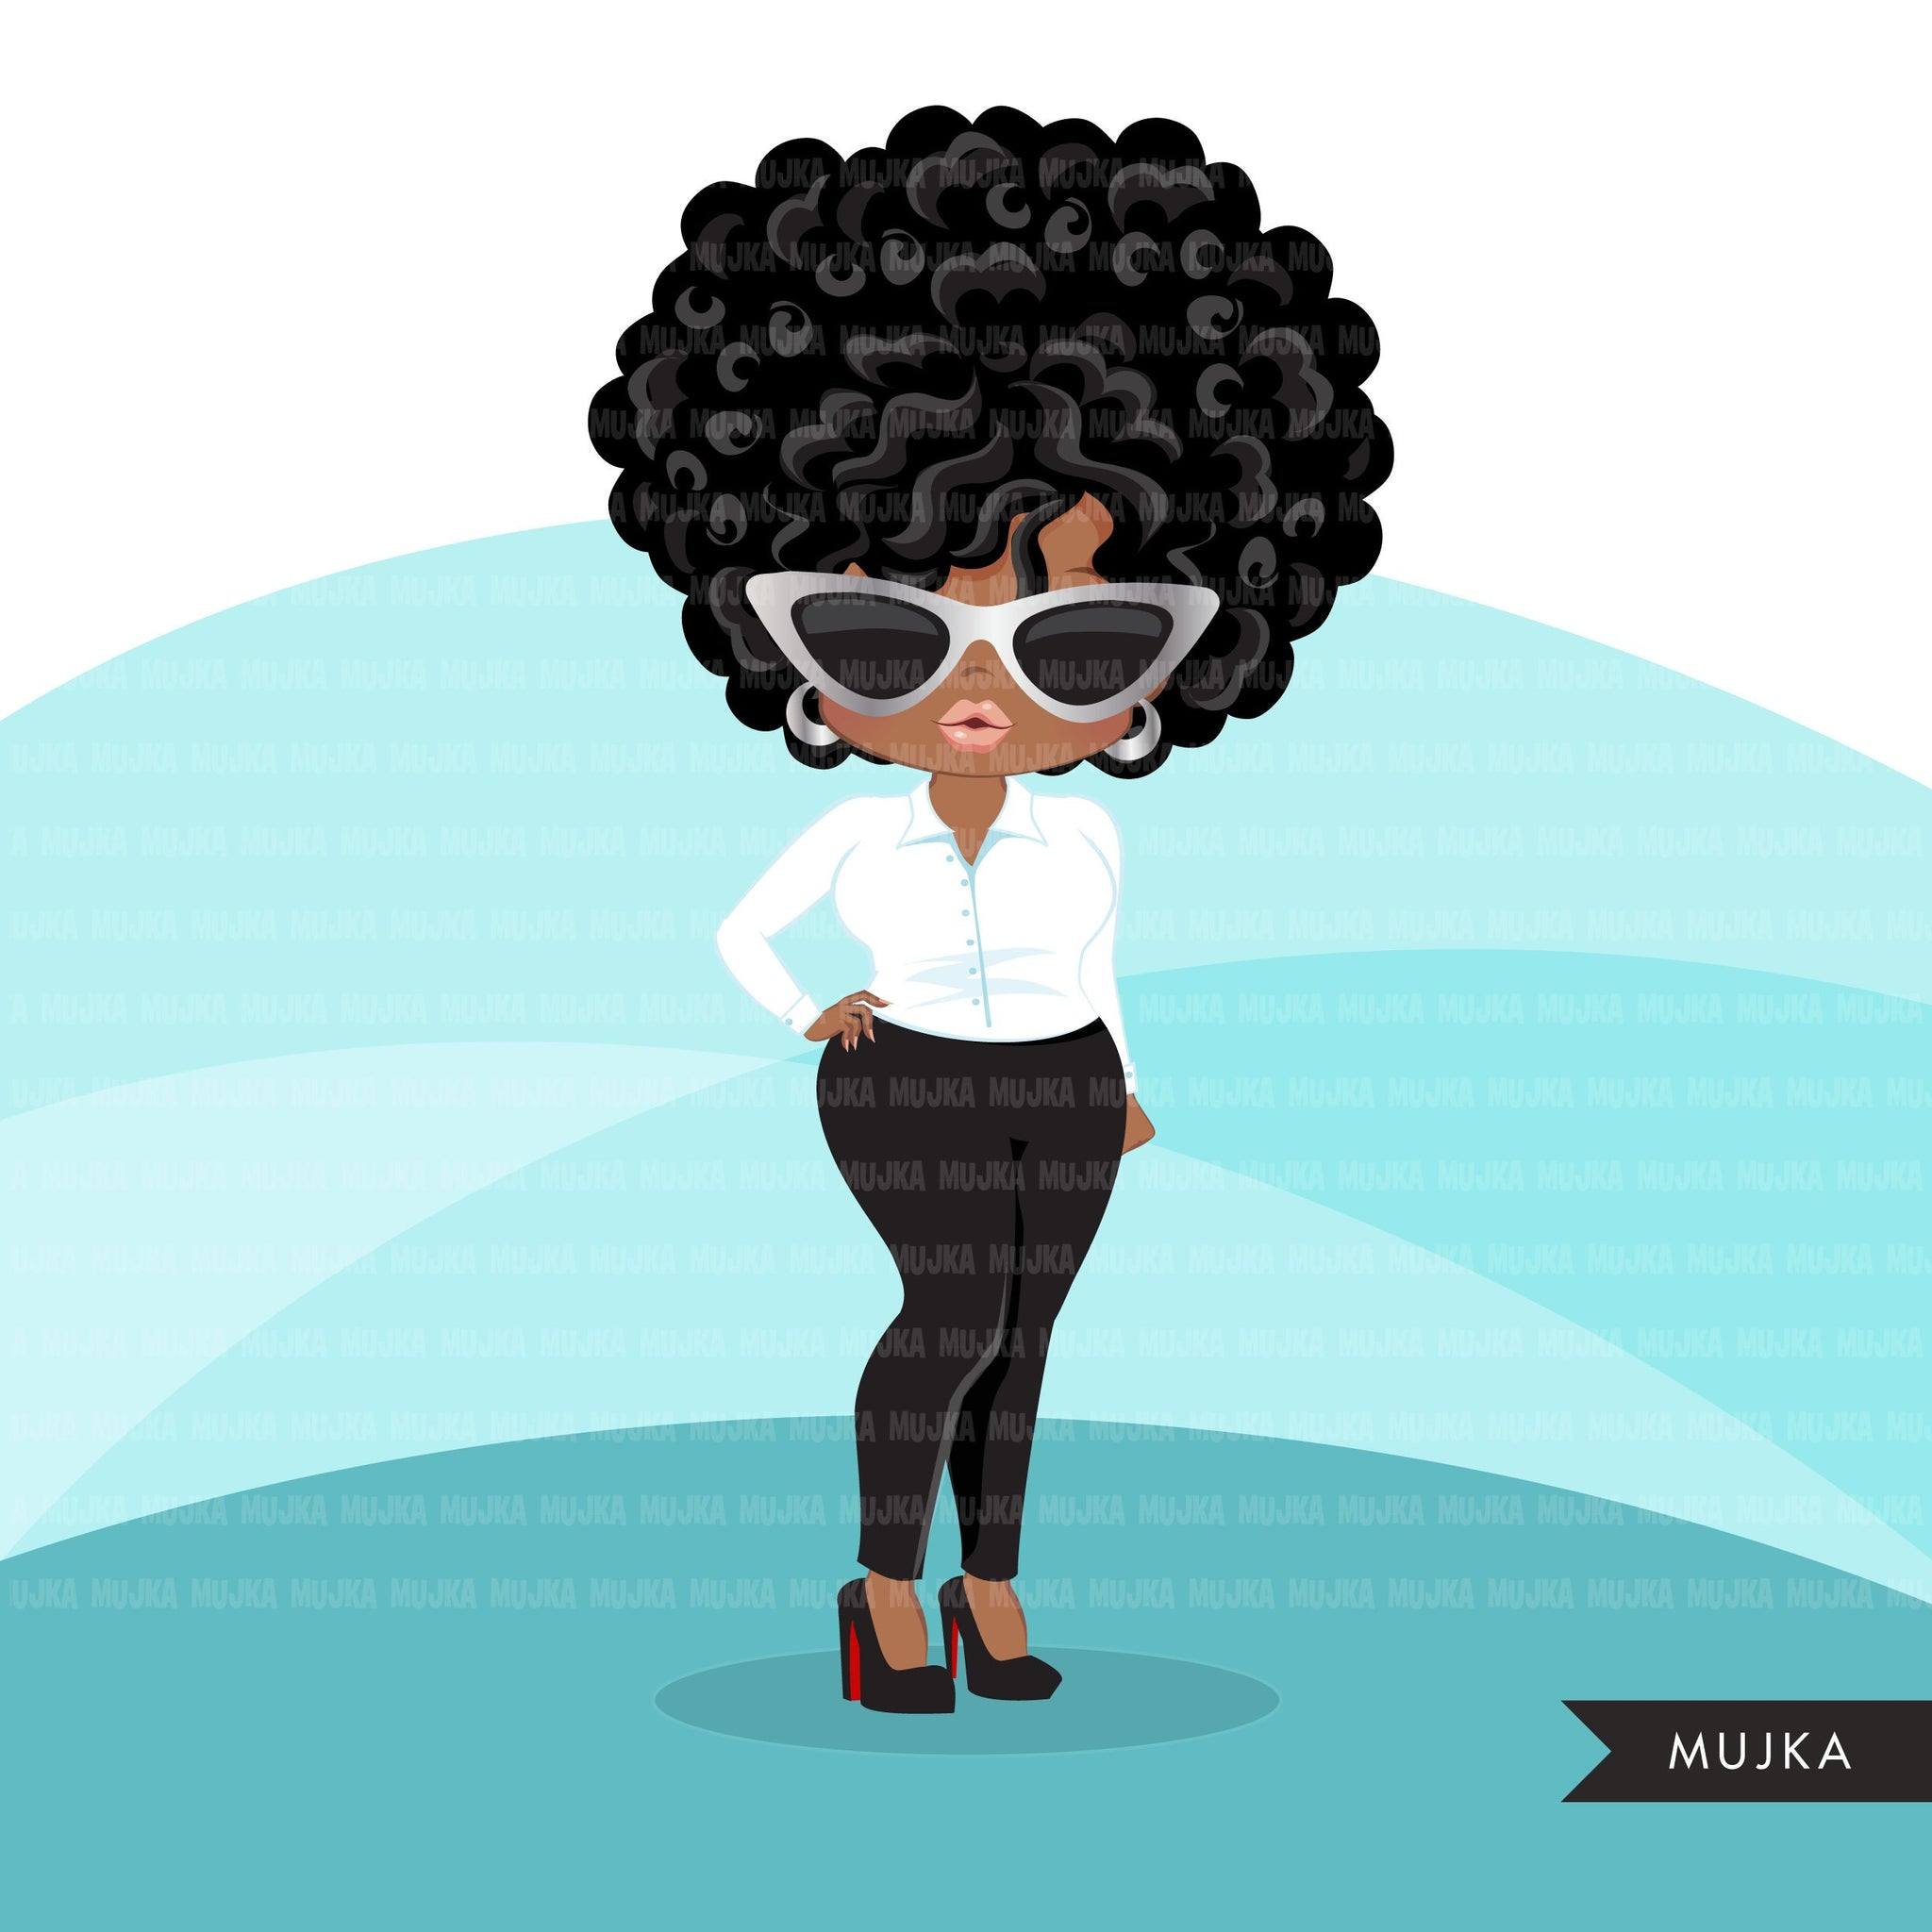 Afro black woman clipart with business suit, briefcase and glasses